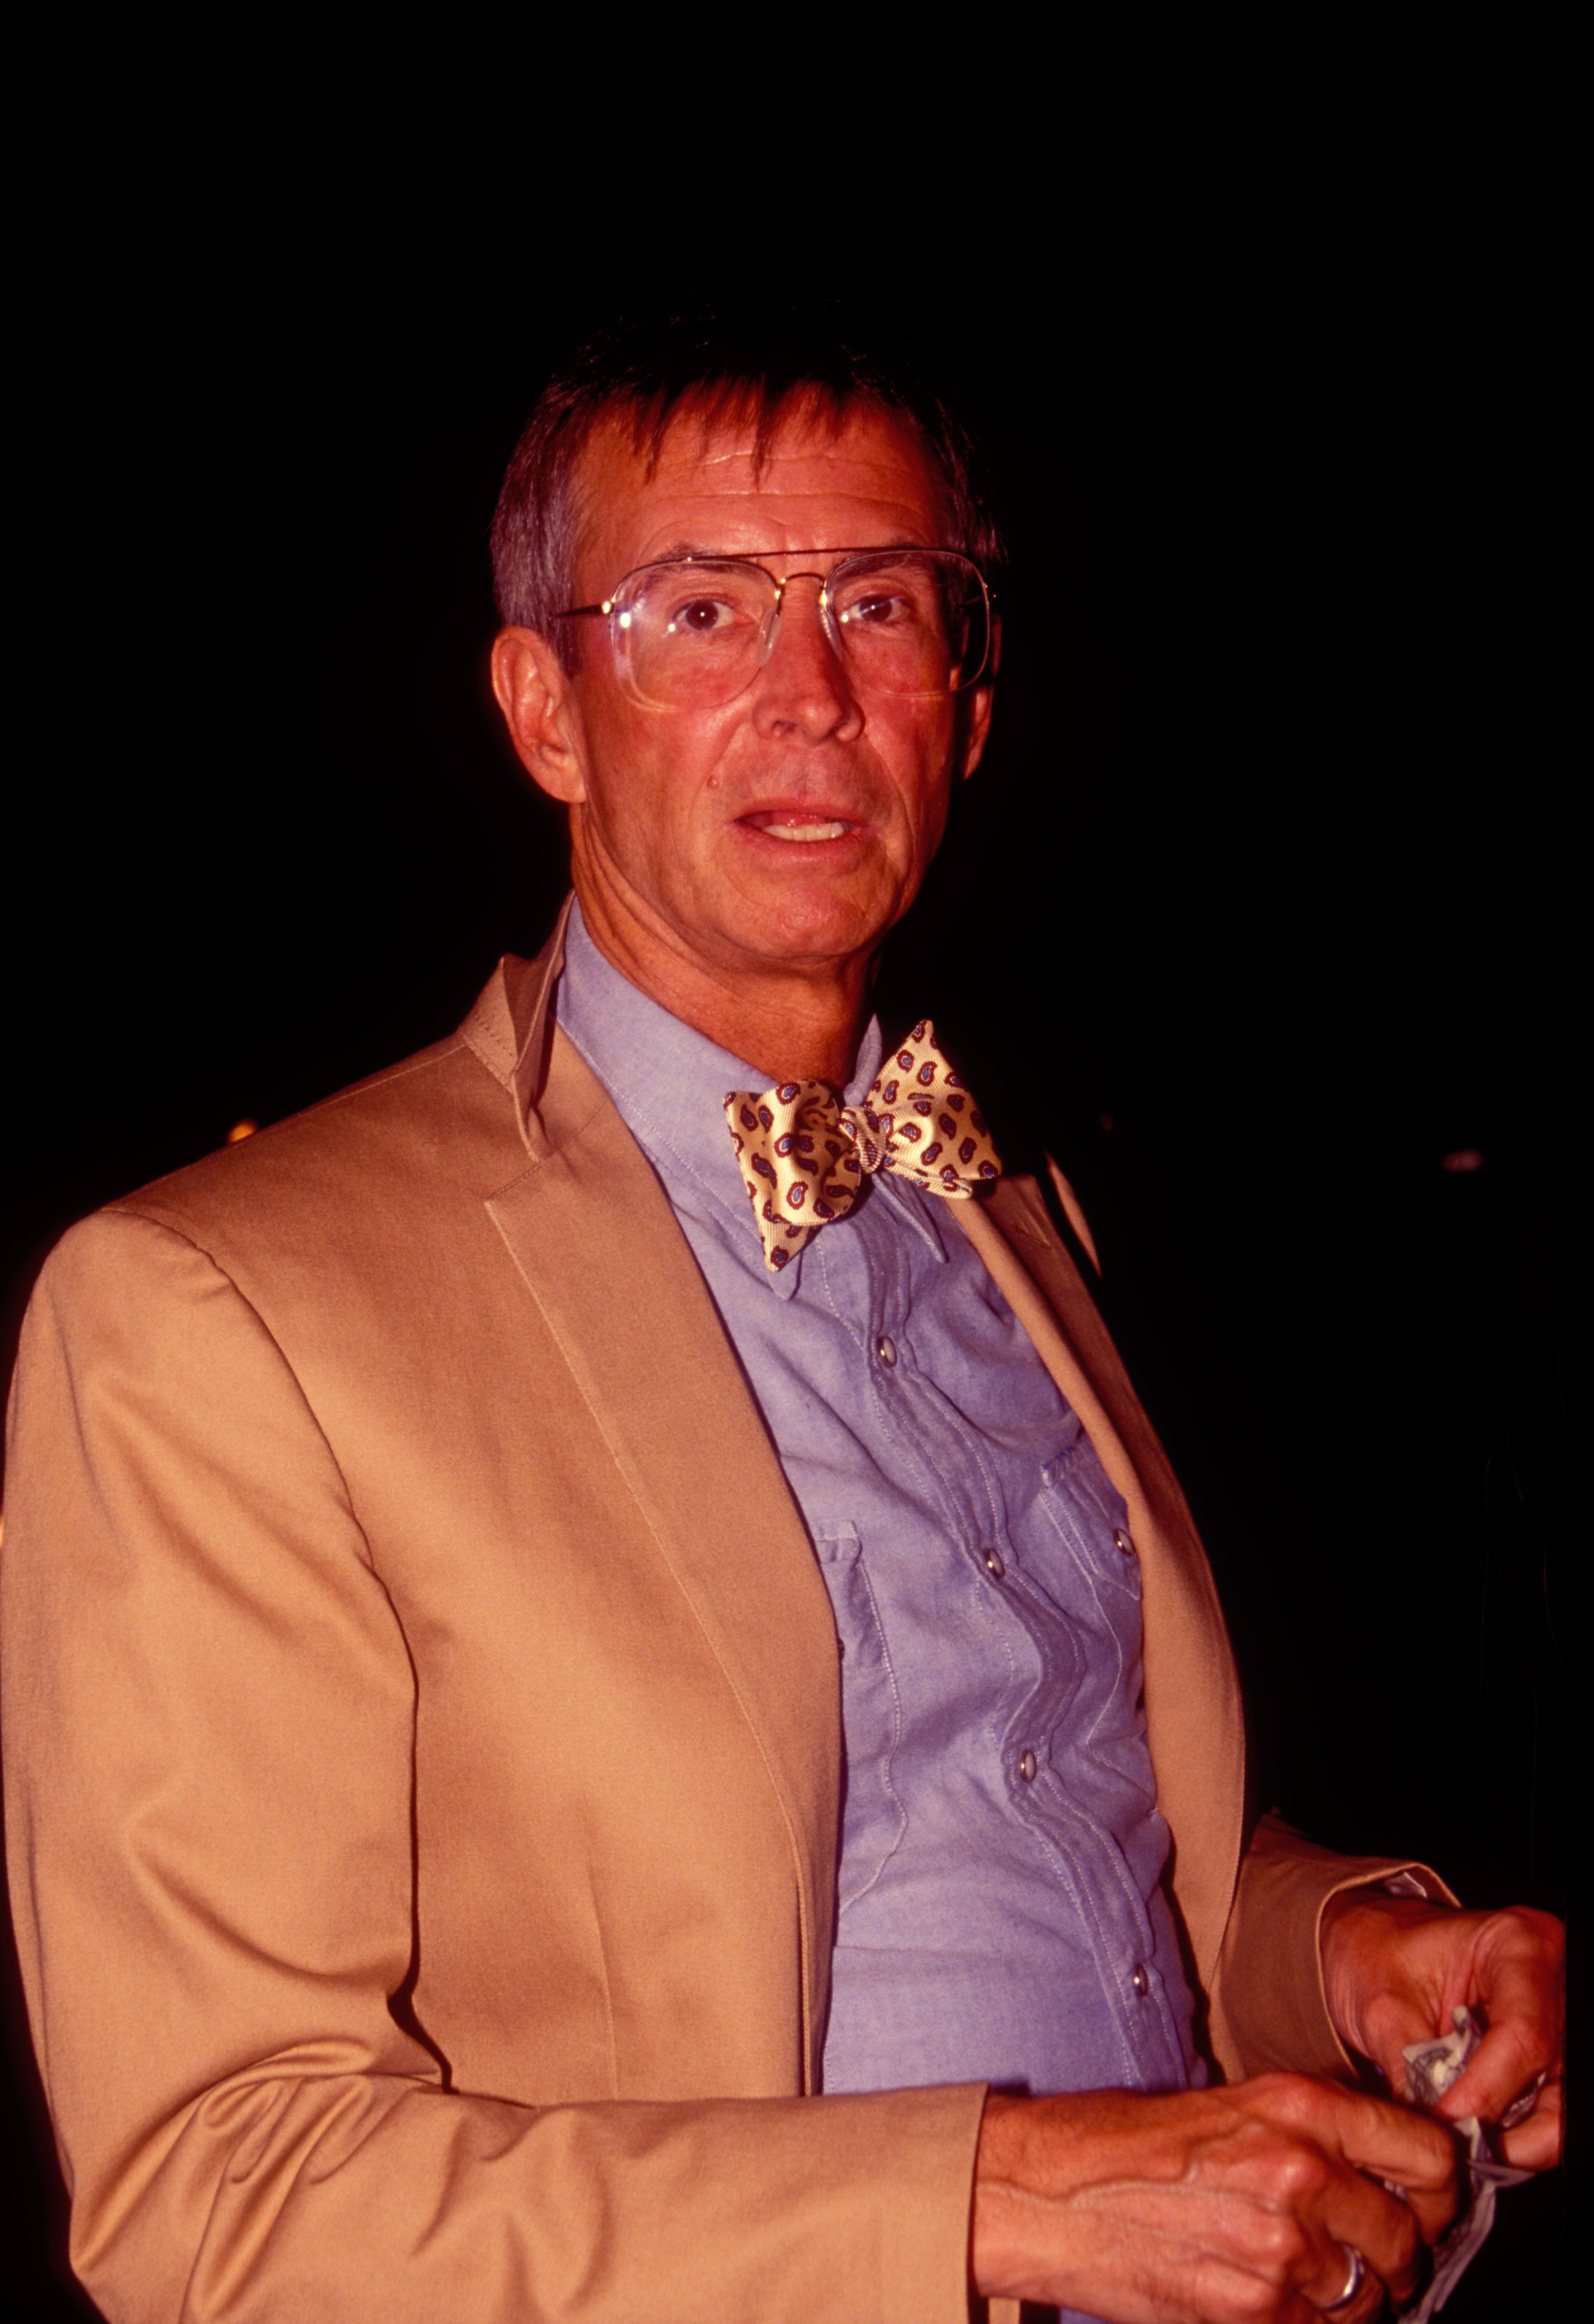 Actor Anthony Perkins leaves Spago restaurant in 1991 in Los Angeles   Photo: Shutterstock